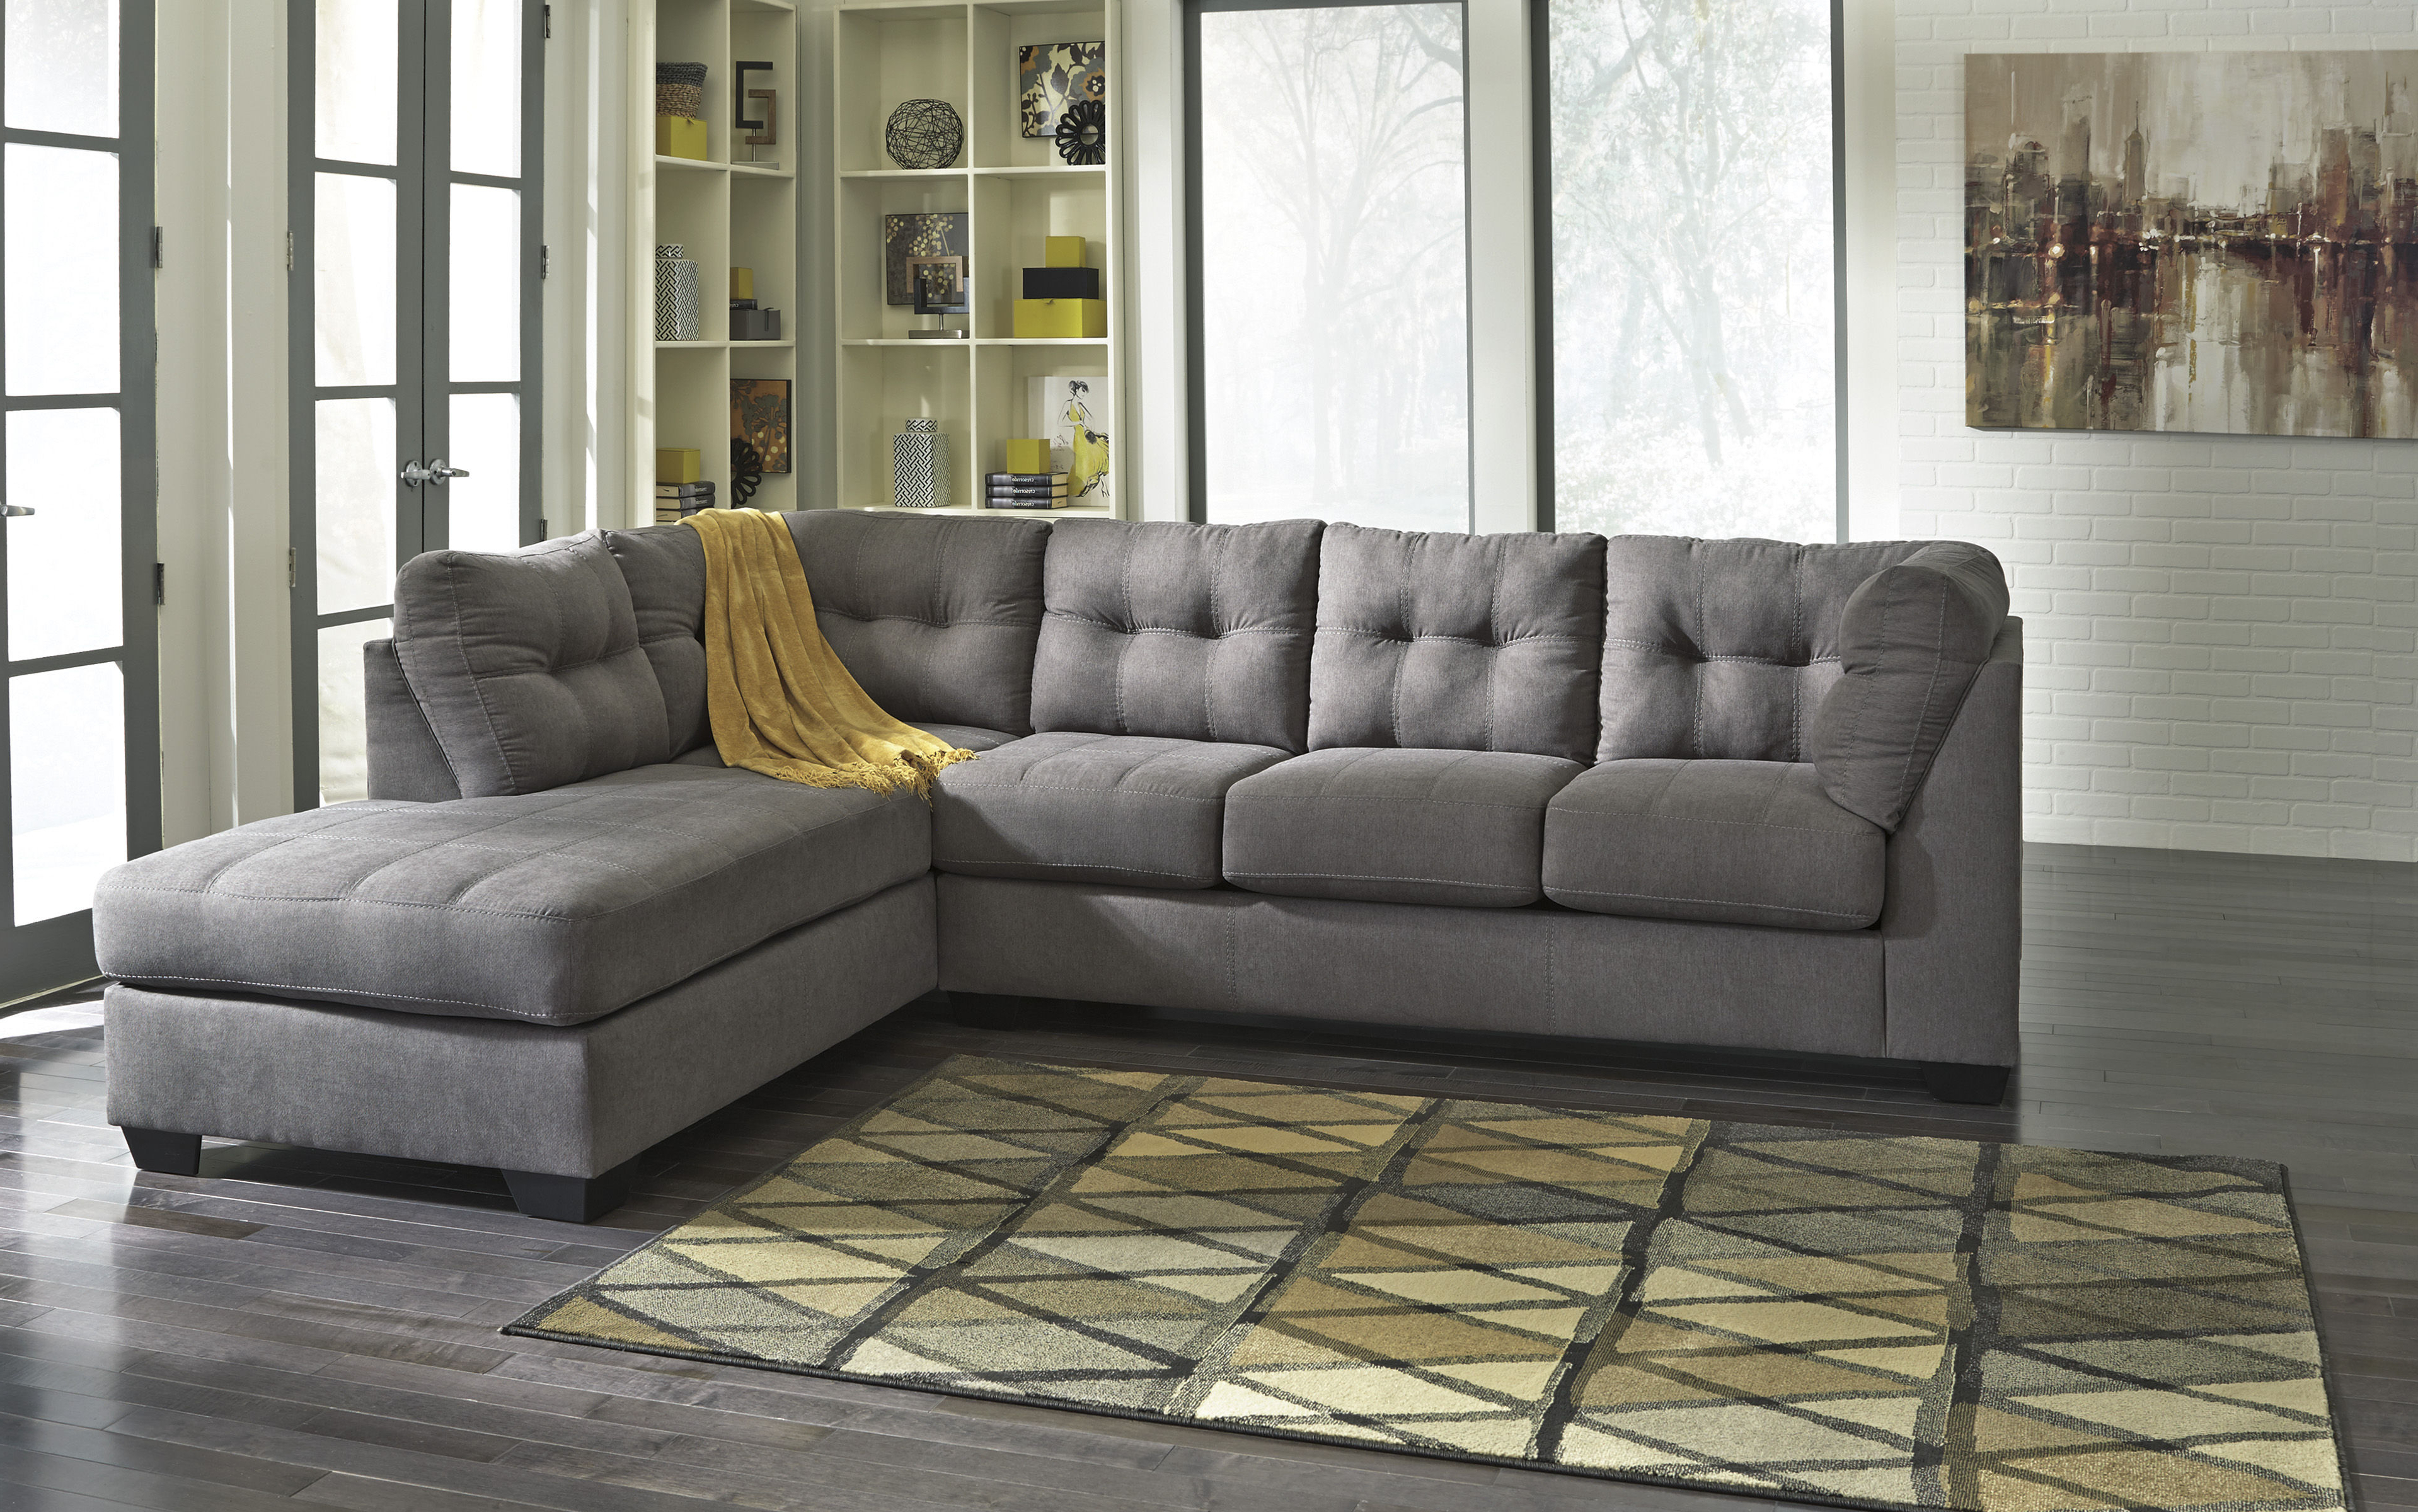 Lucy Grey 2 Piece Sectionals With Laf Chaise Pertaining To Fashionable Ashley Furniture Maier Charcoal Raf Chaise Sectional (View 8 of 20)